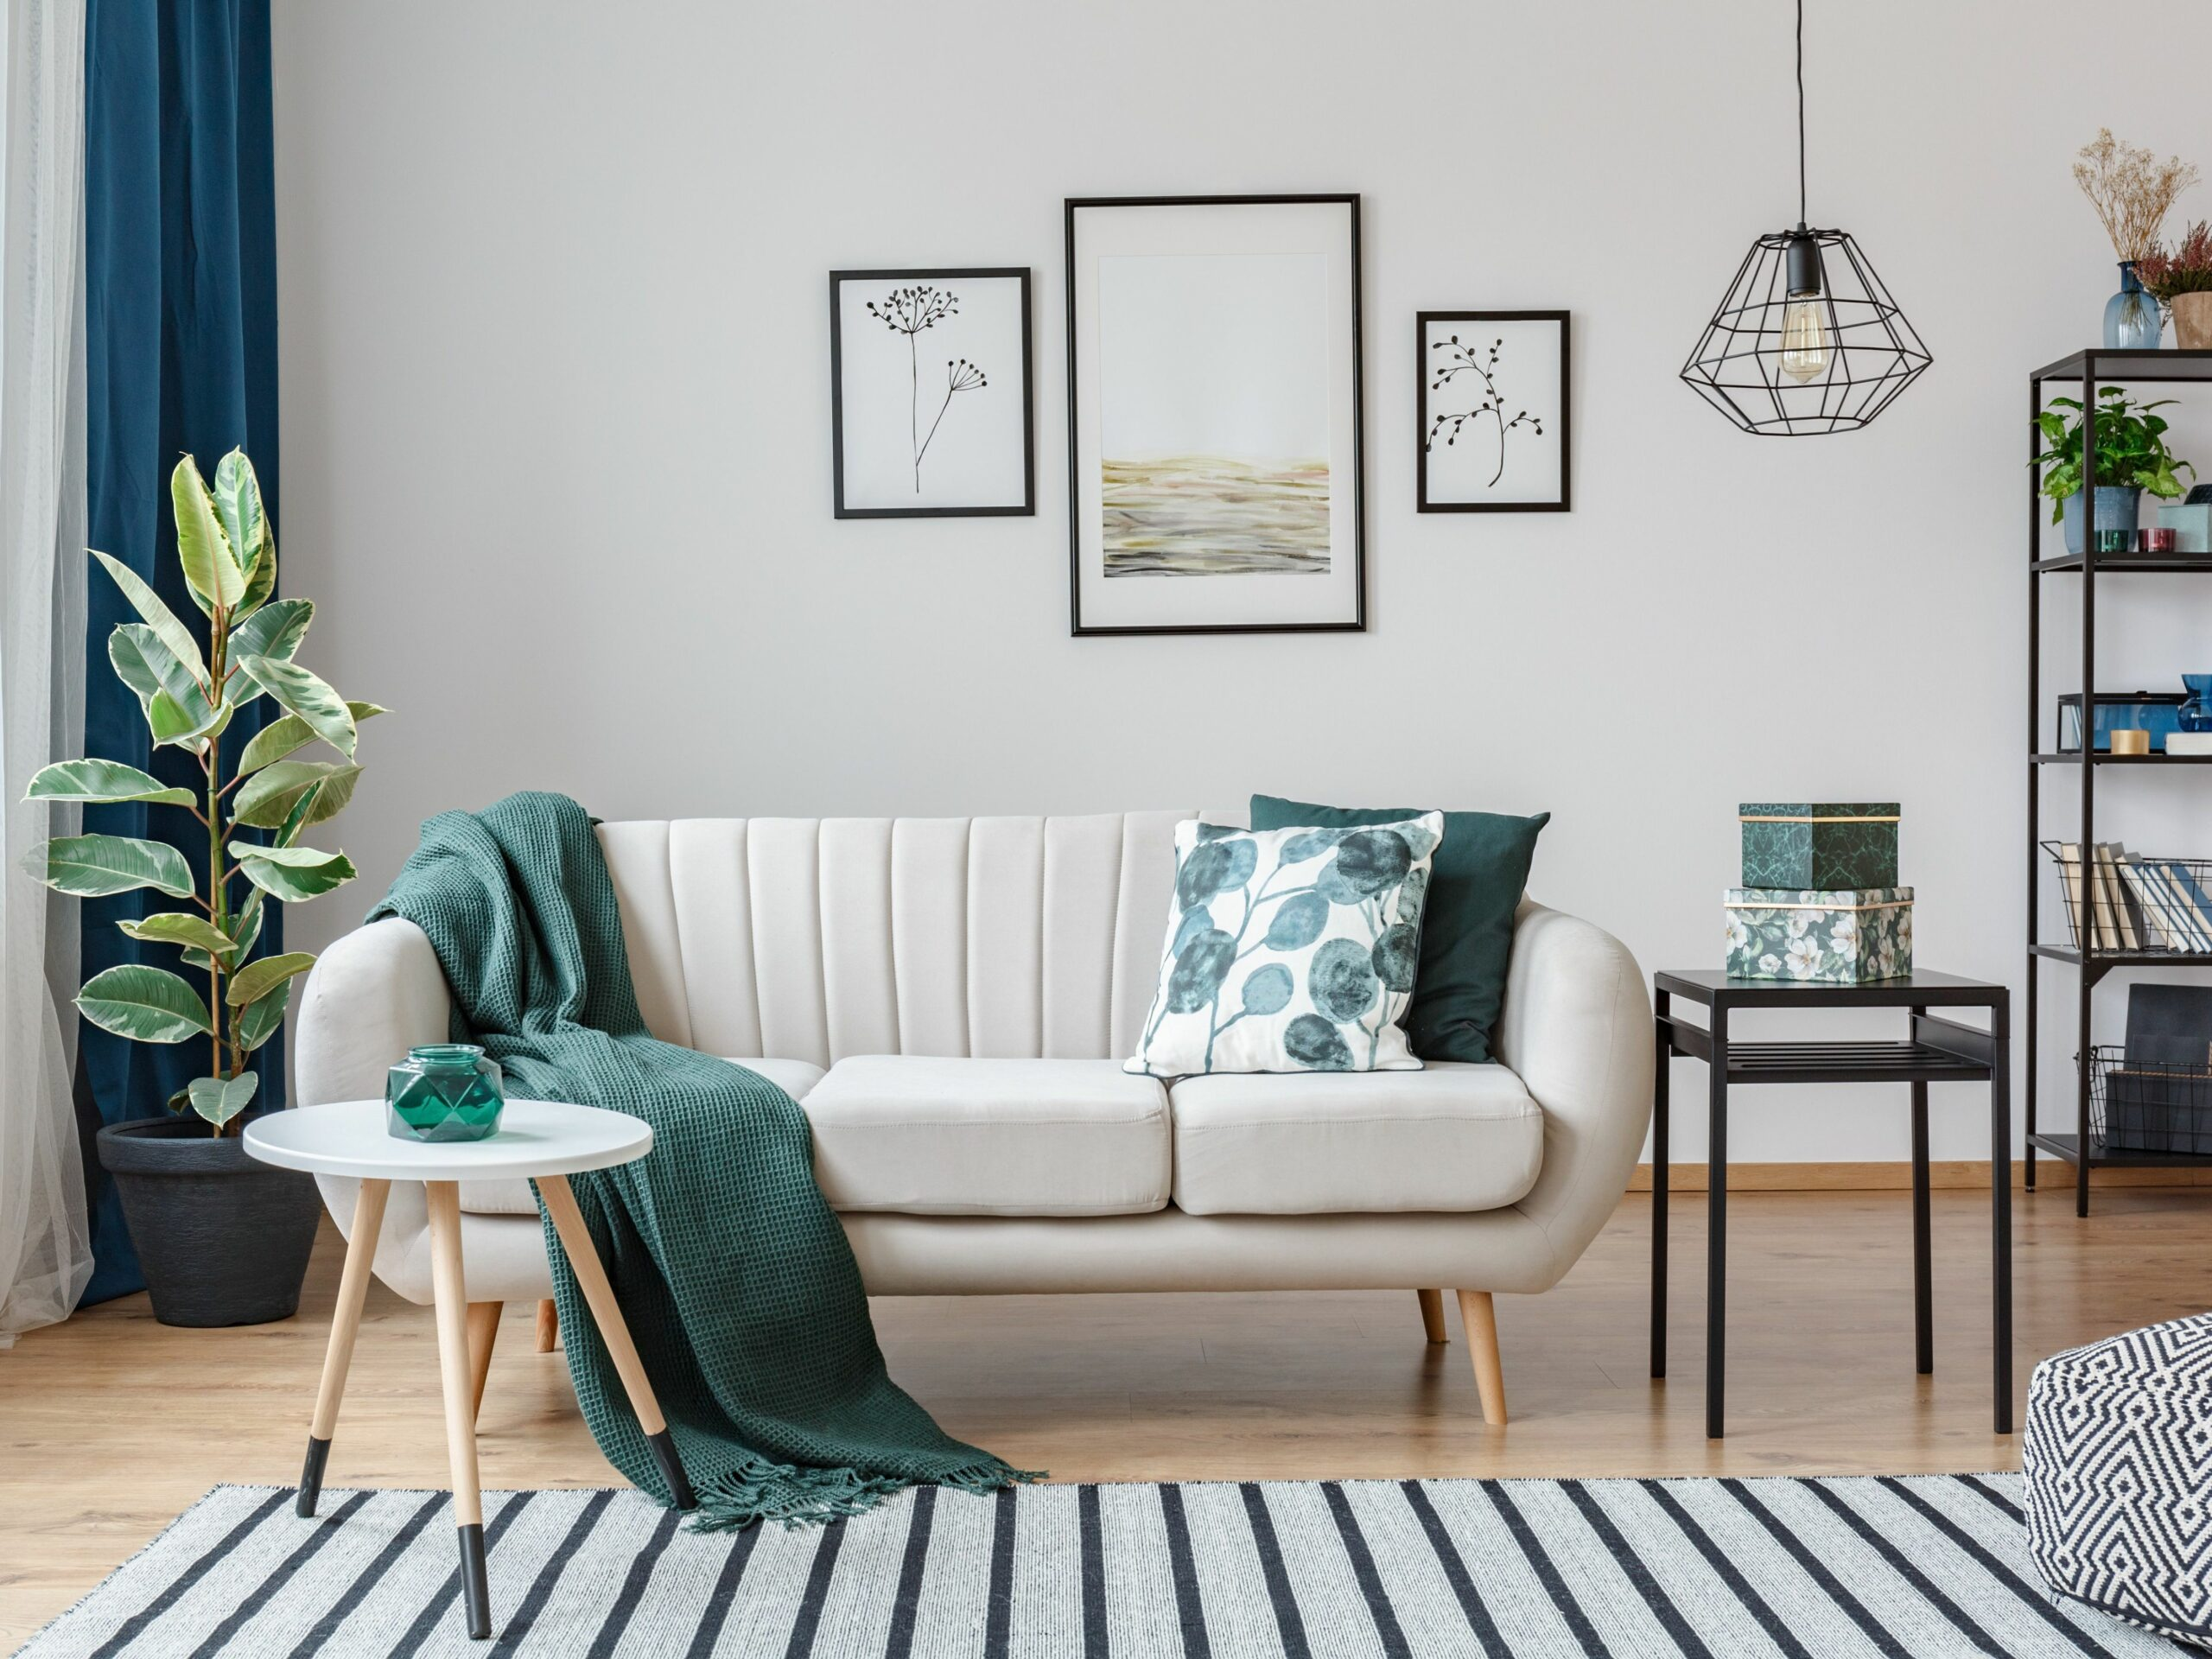 The 9 Best Online Retailers to Shop for Home Decor in 9 - home decor retailers